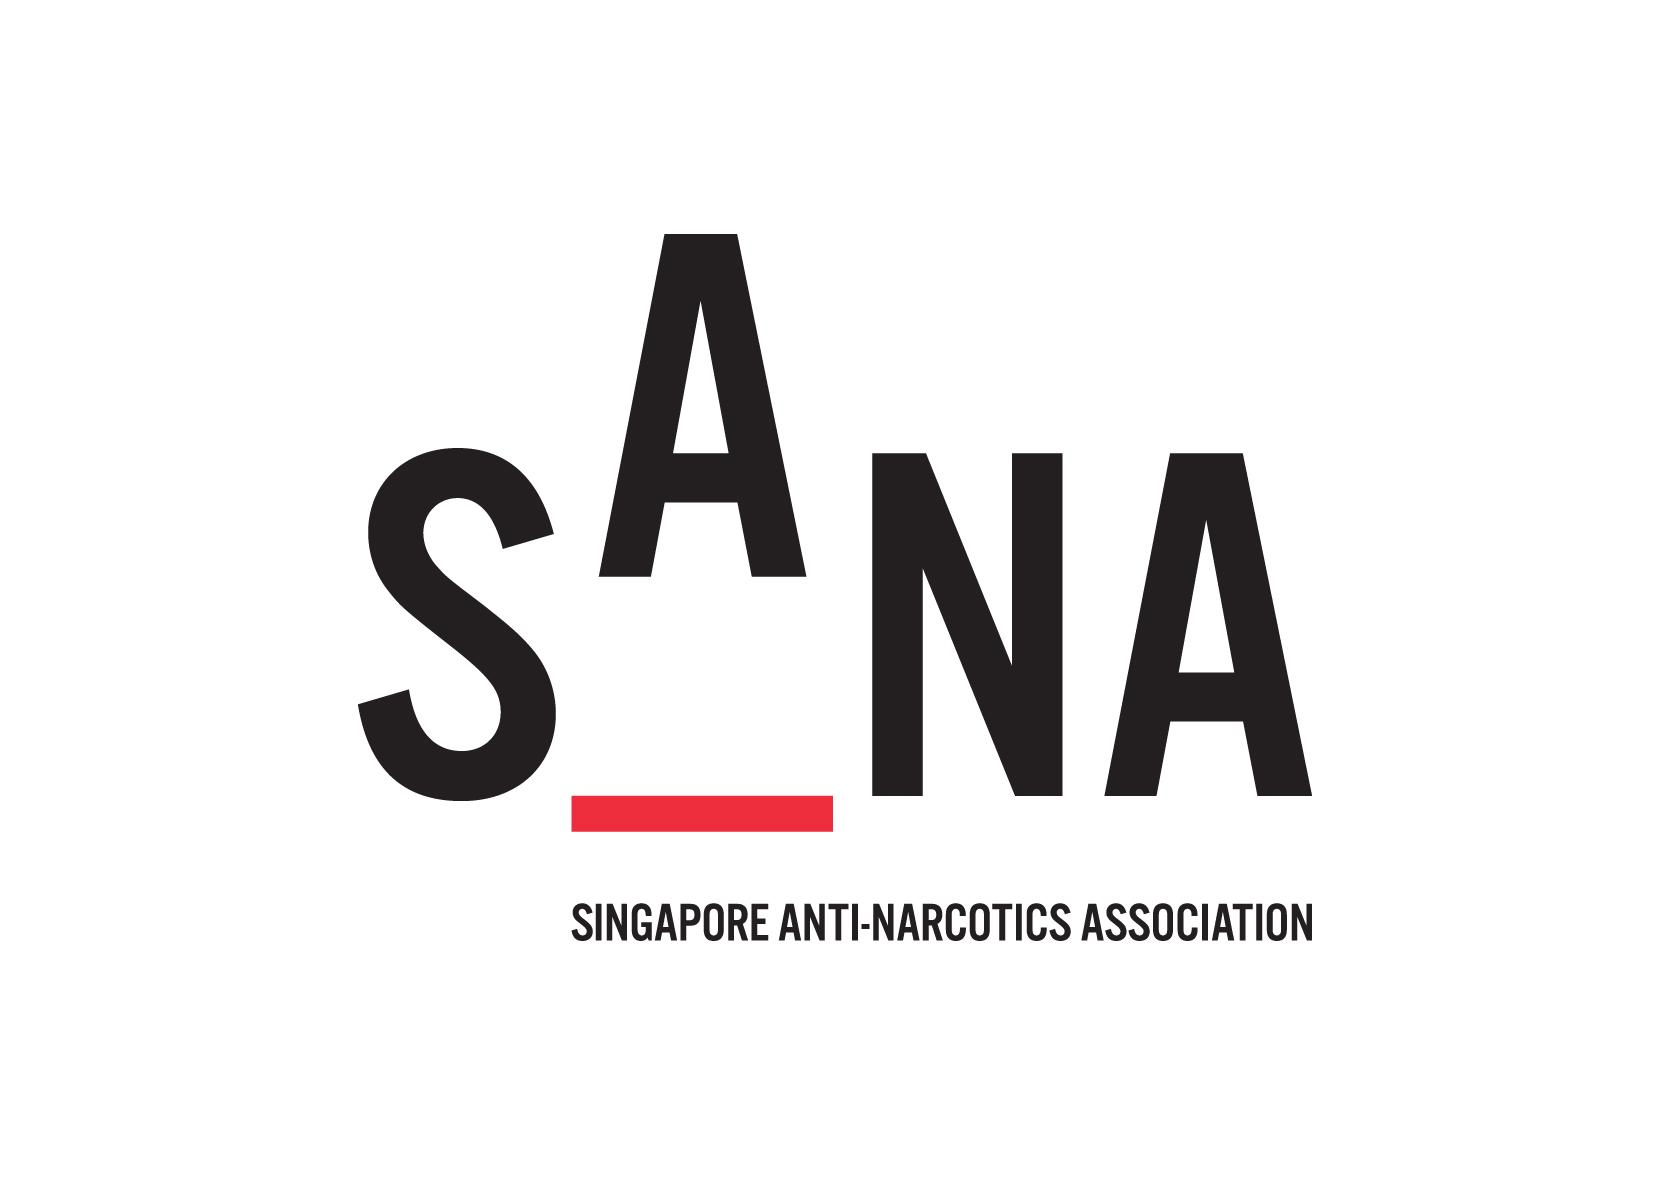 Singapore Anti-Narcotics Association